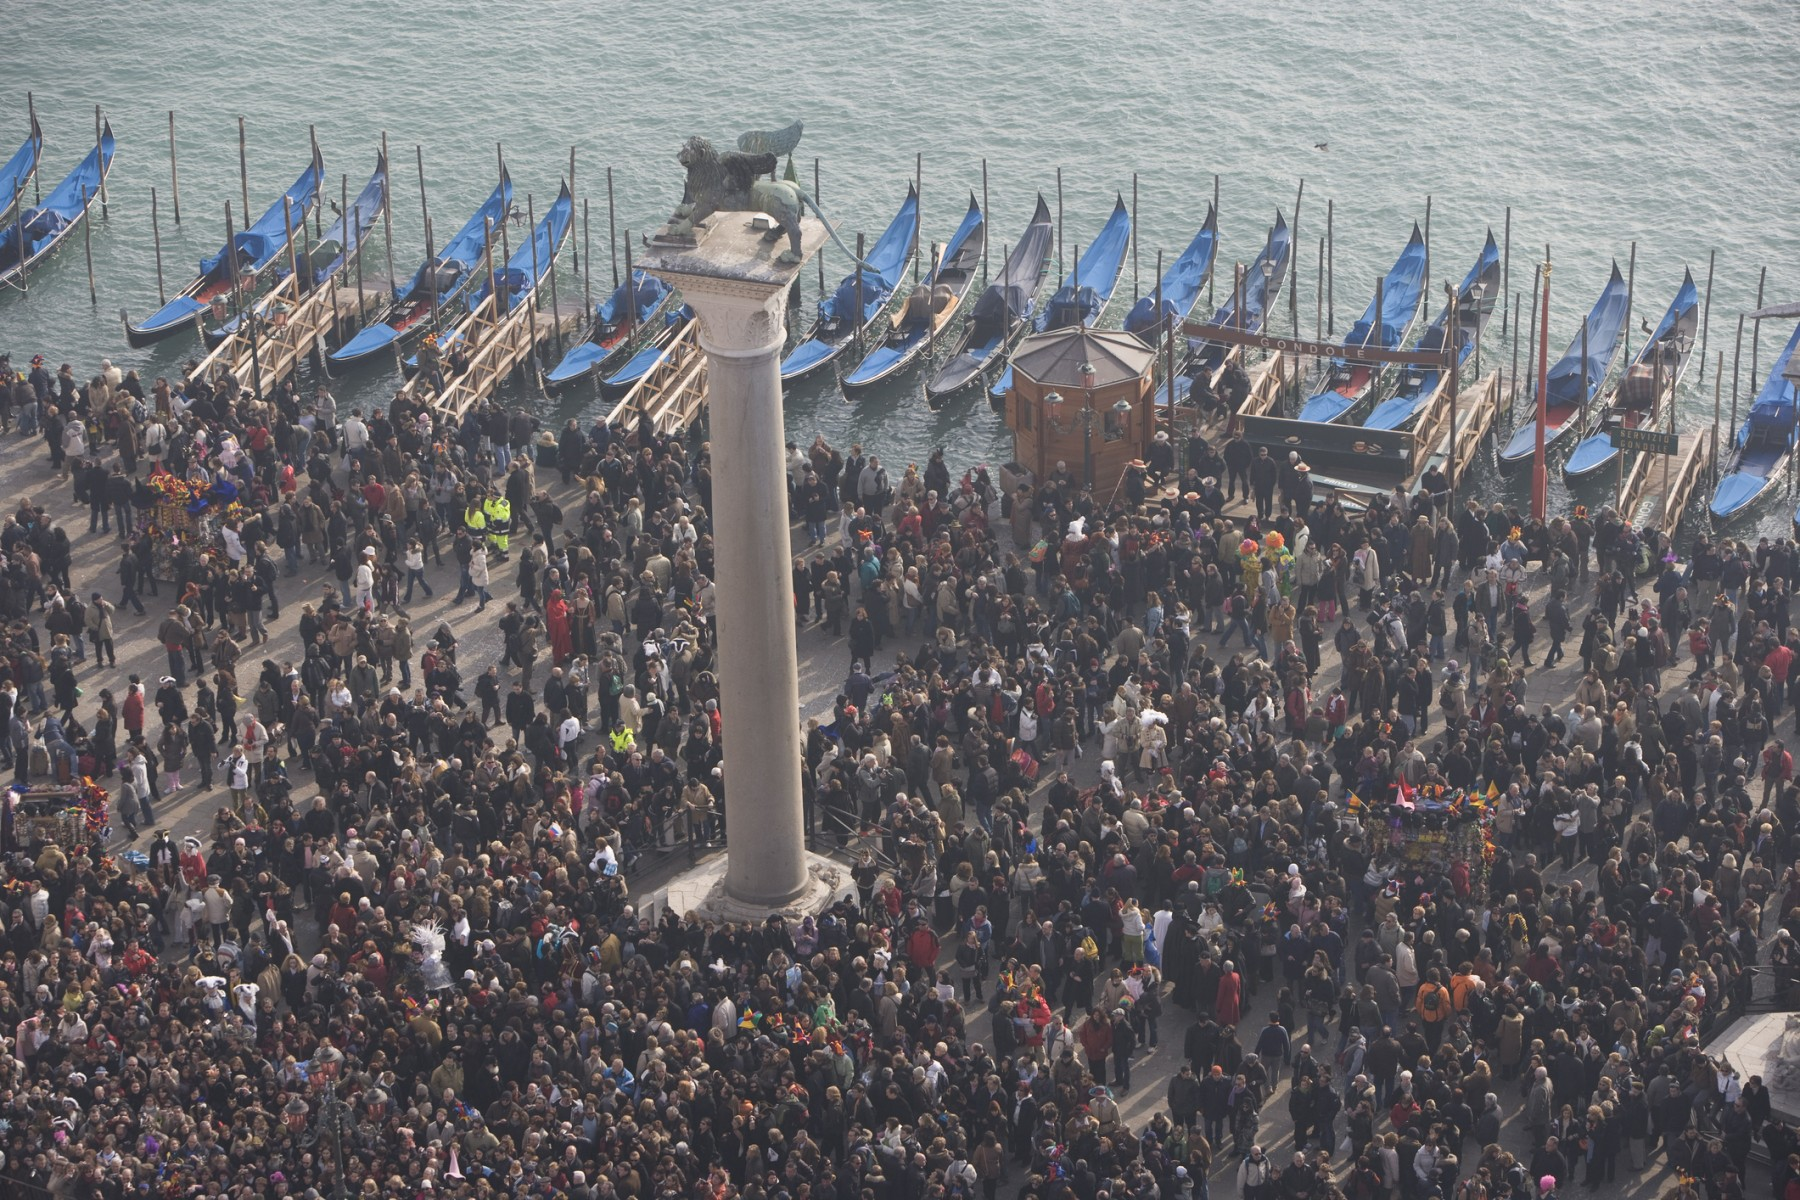 Overcrowding due to tourism in Venice